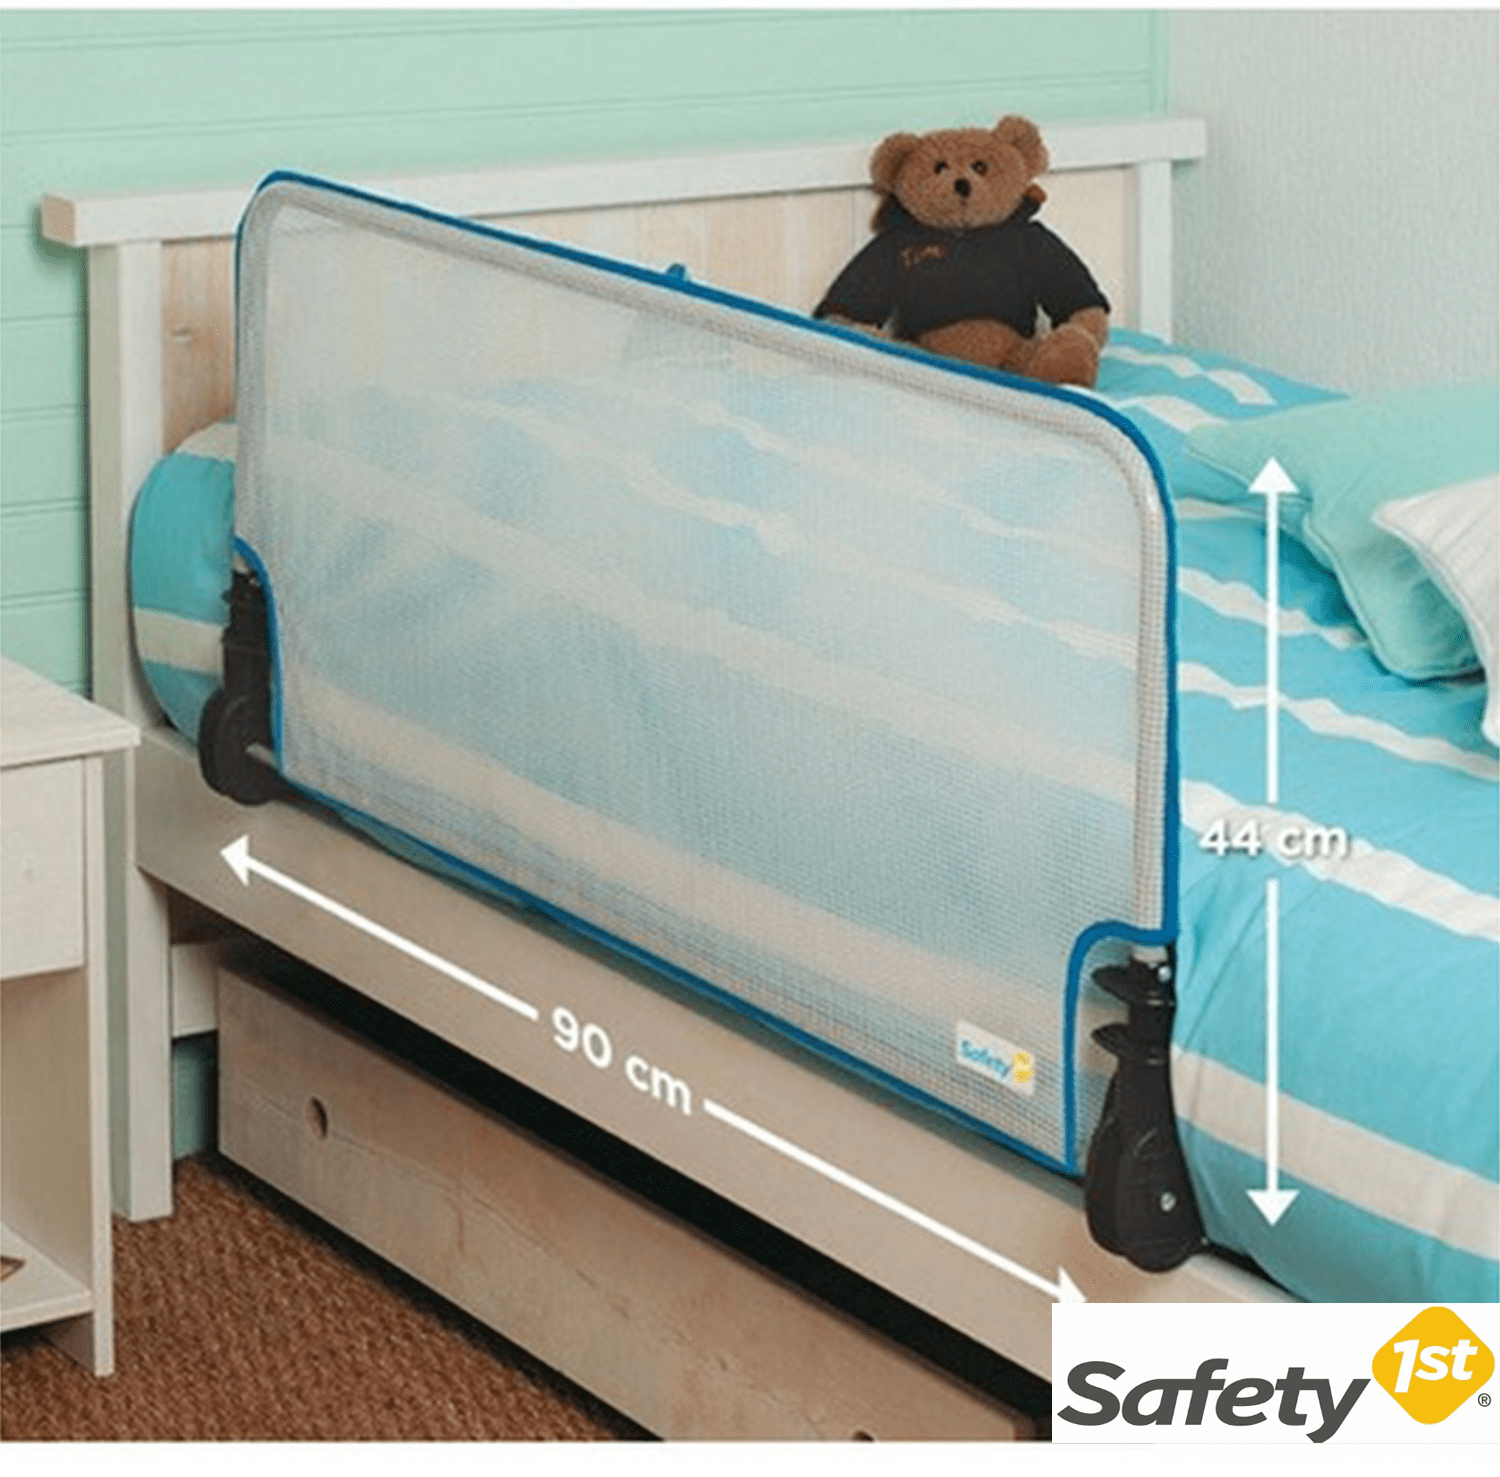 Safety first barriera per letto iperbimbo - Barriera per letto singolo ...